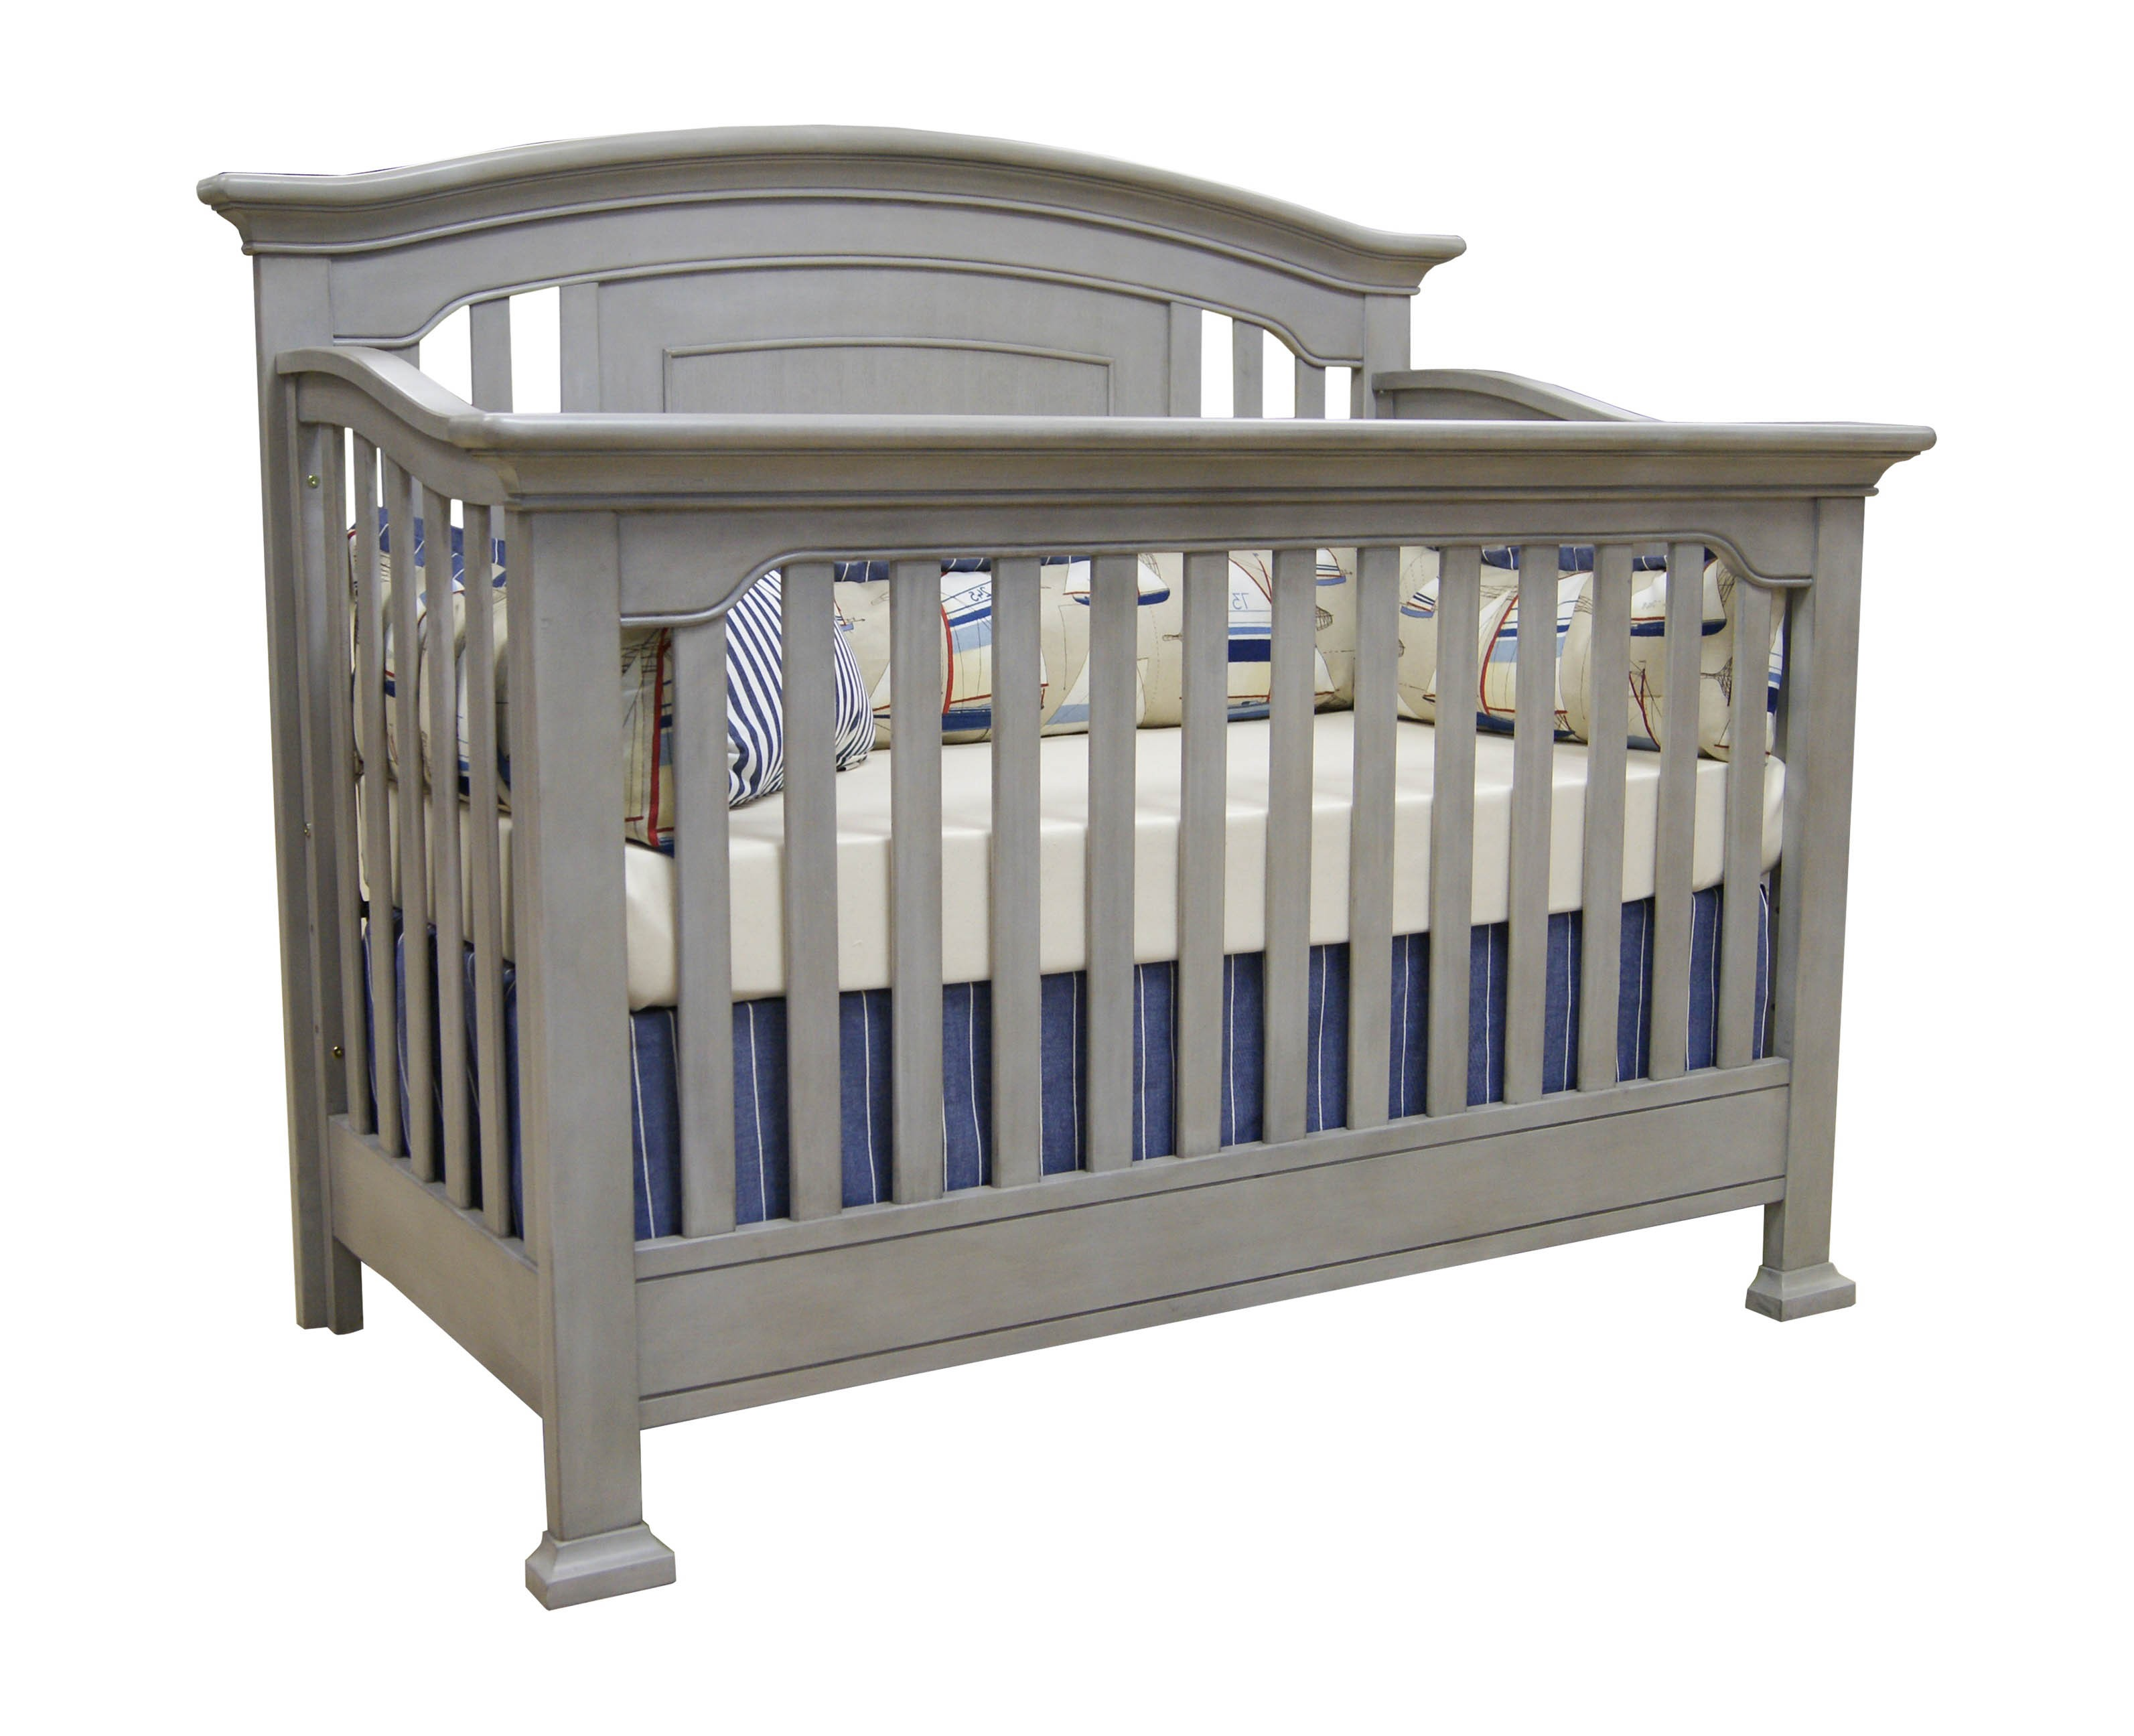 Wooden Crib In Dark Grey By Munire Crib For Nursery Furniture Ideas